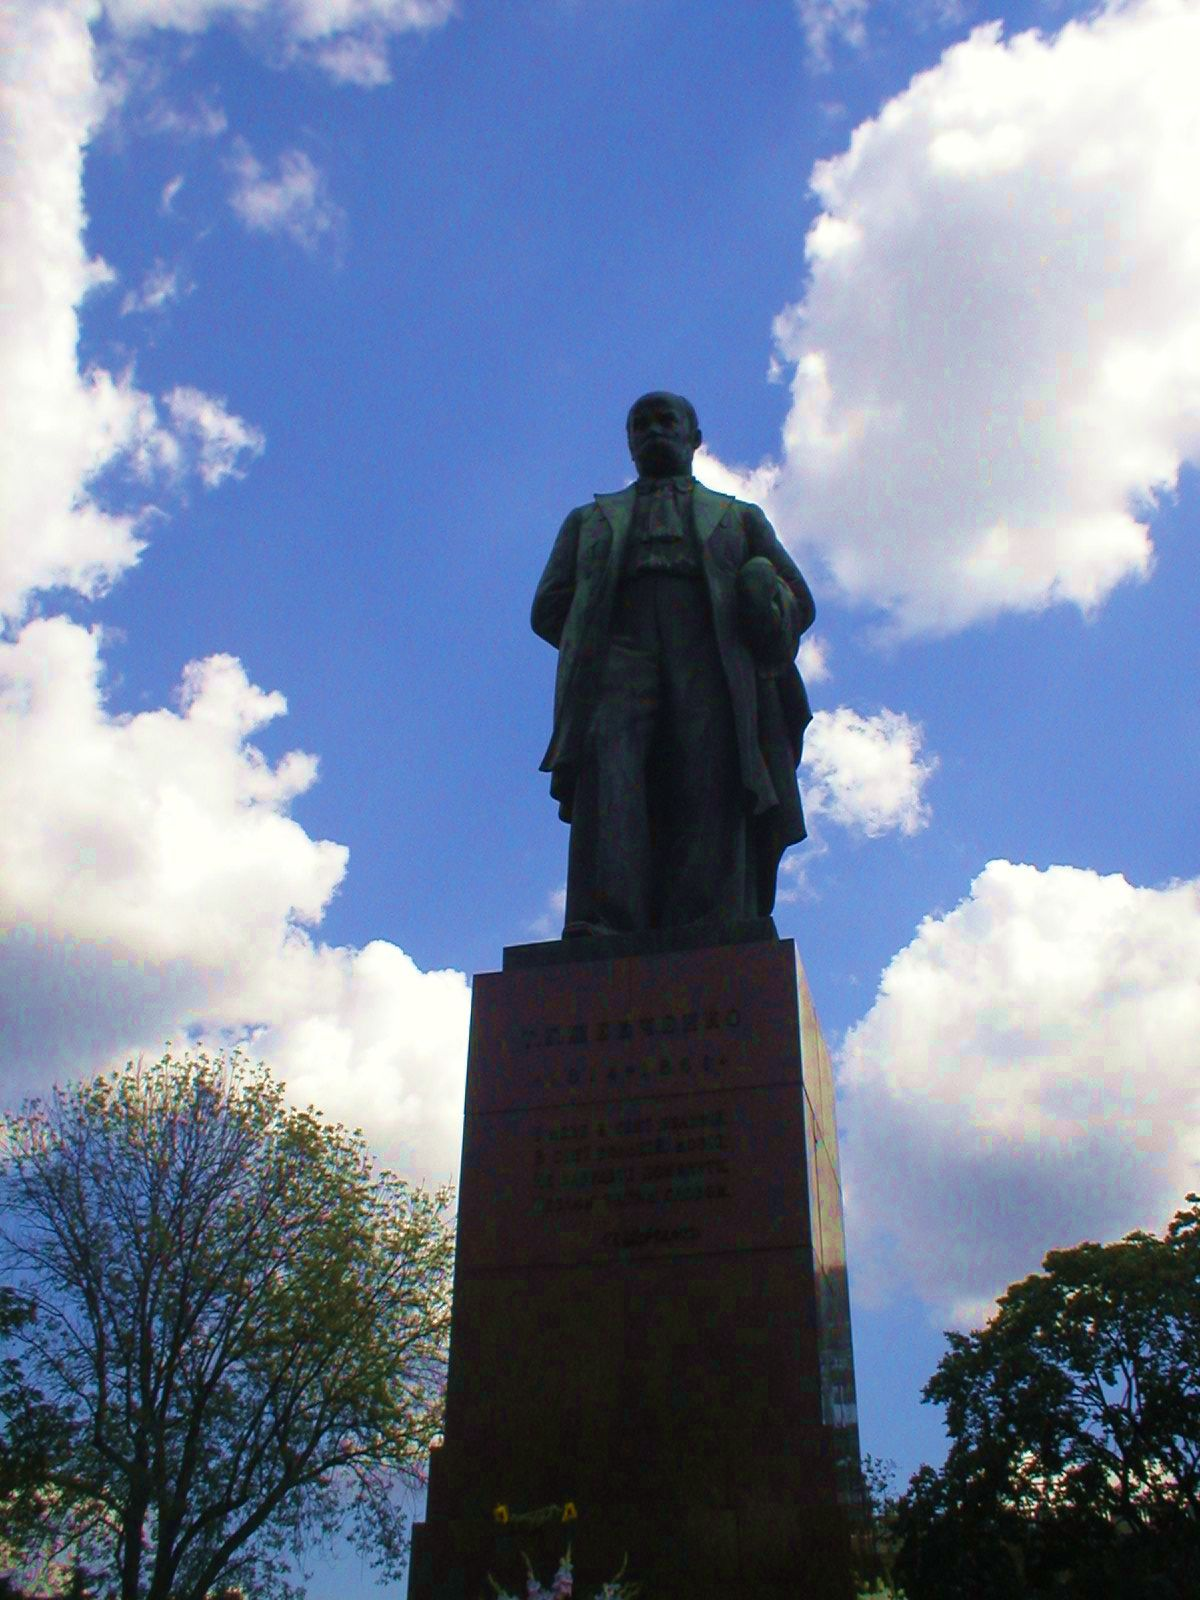 Taras Shevchenko Monument near the University Red Building